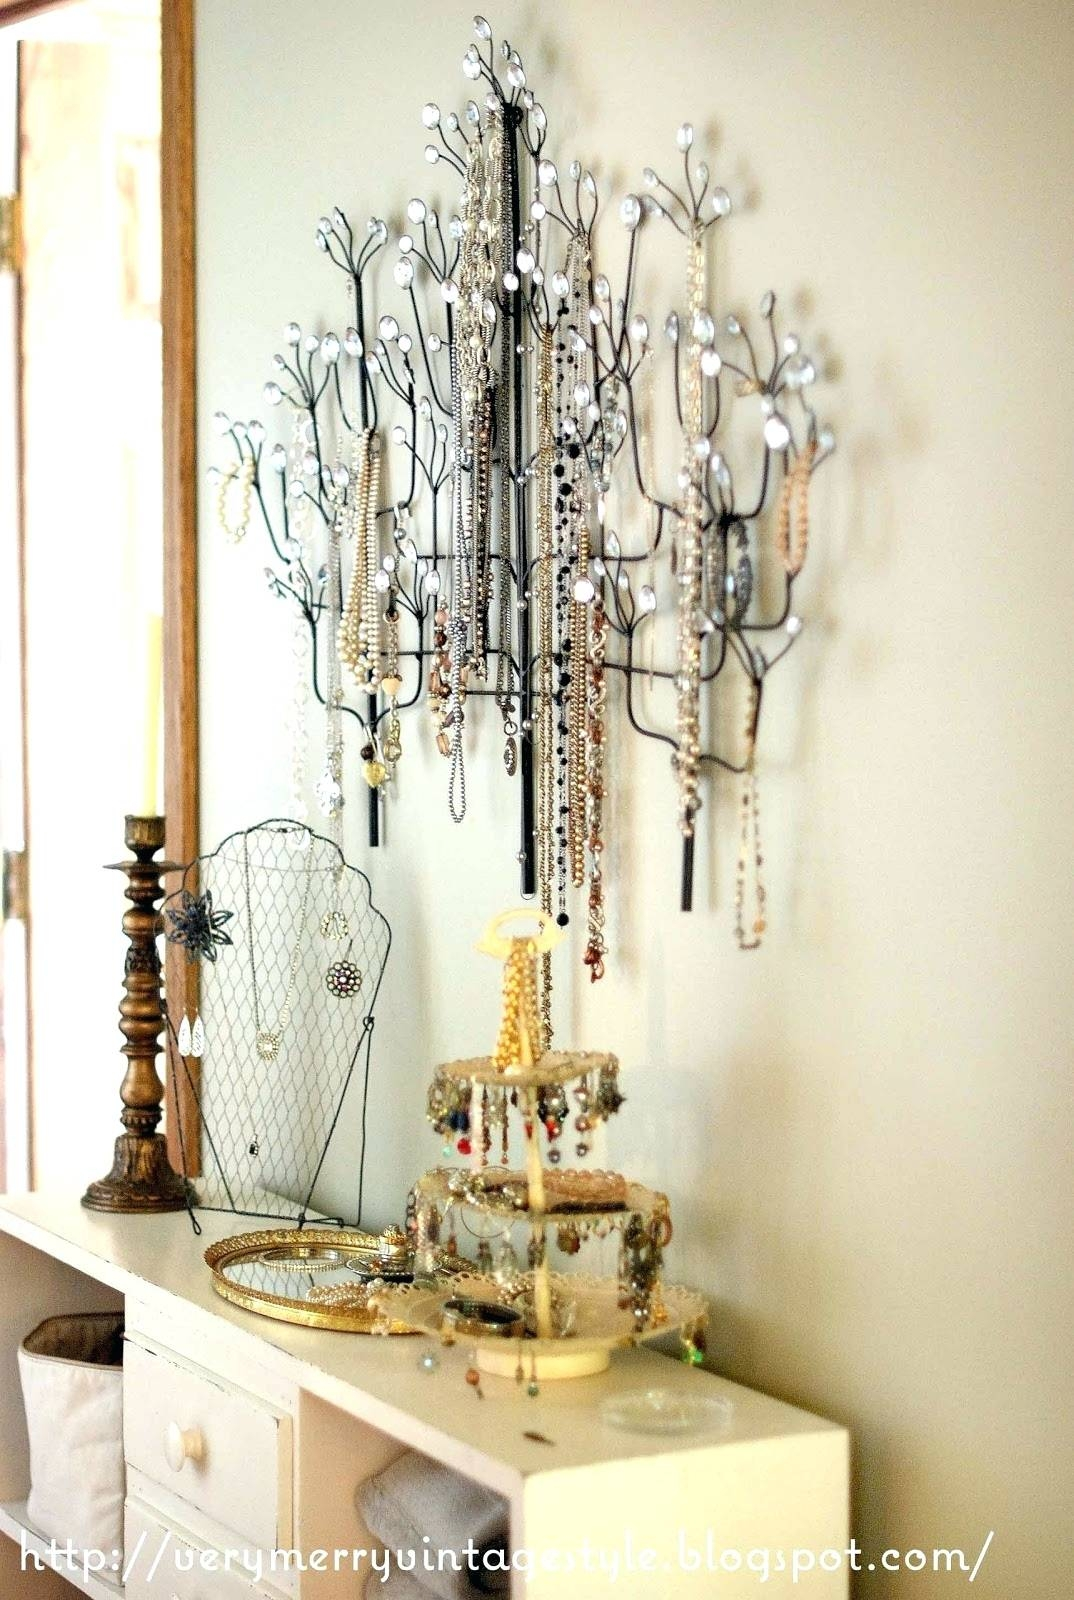 Wall Arts ~ Excellent Vintage Metal Wall Art Sculpture You Might With Regard To Recent Vintage Metal Wall Art (View 17 of 20)